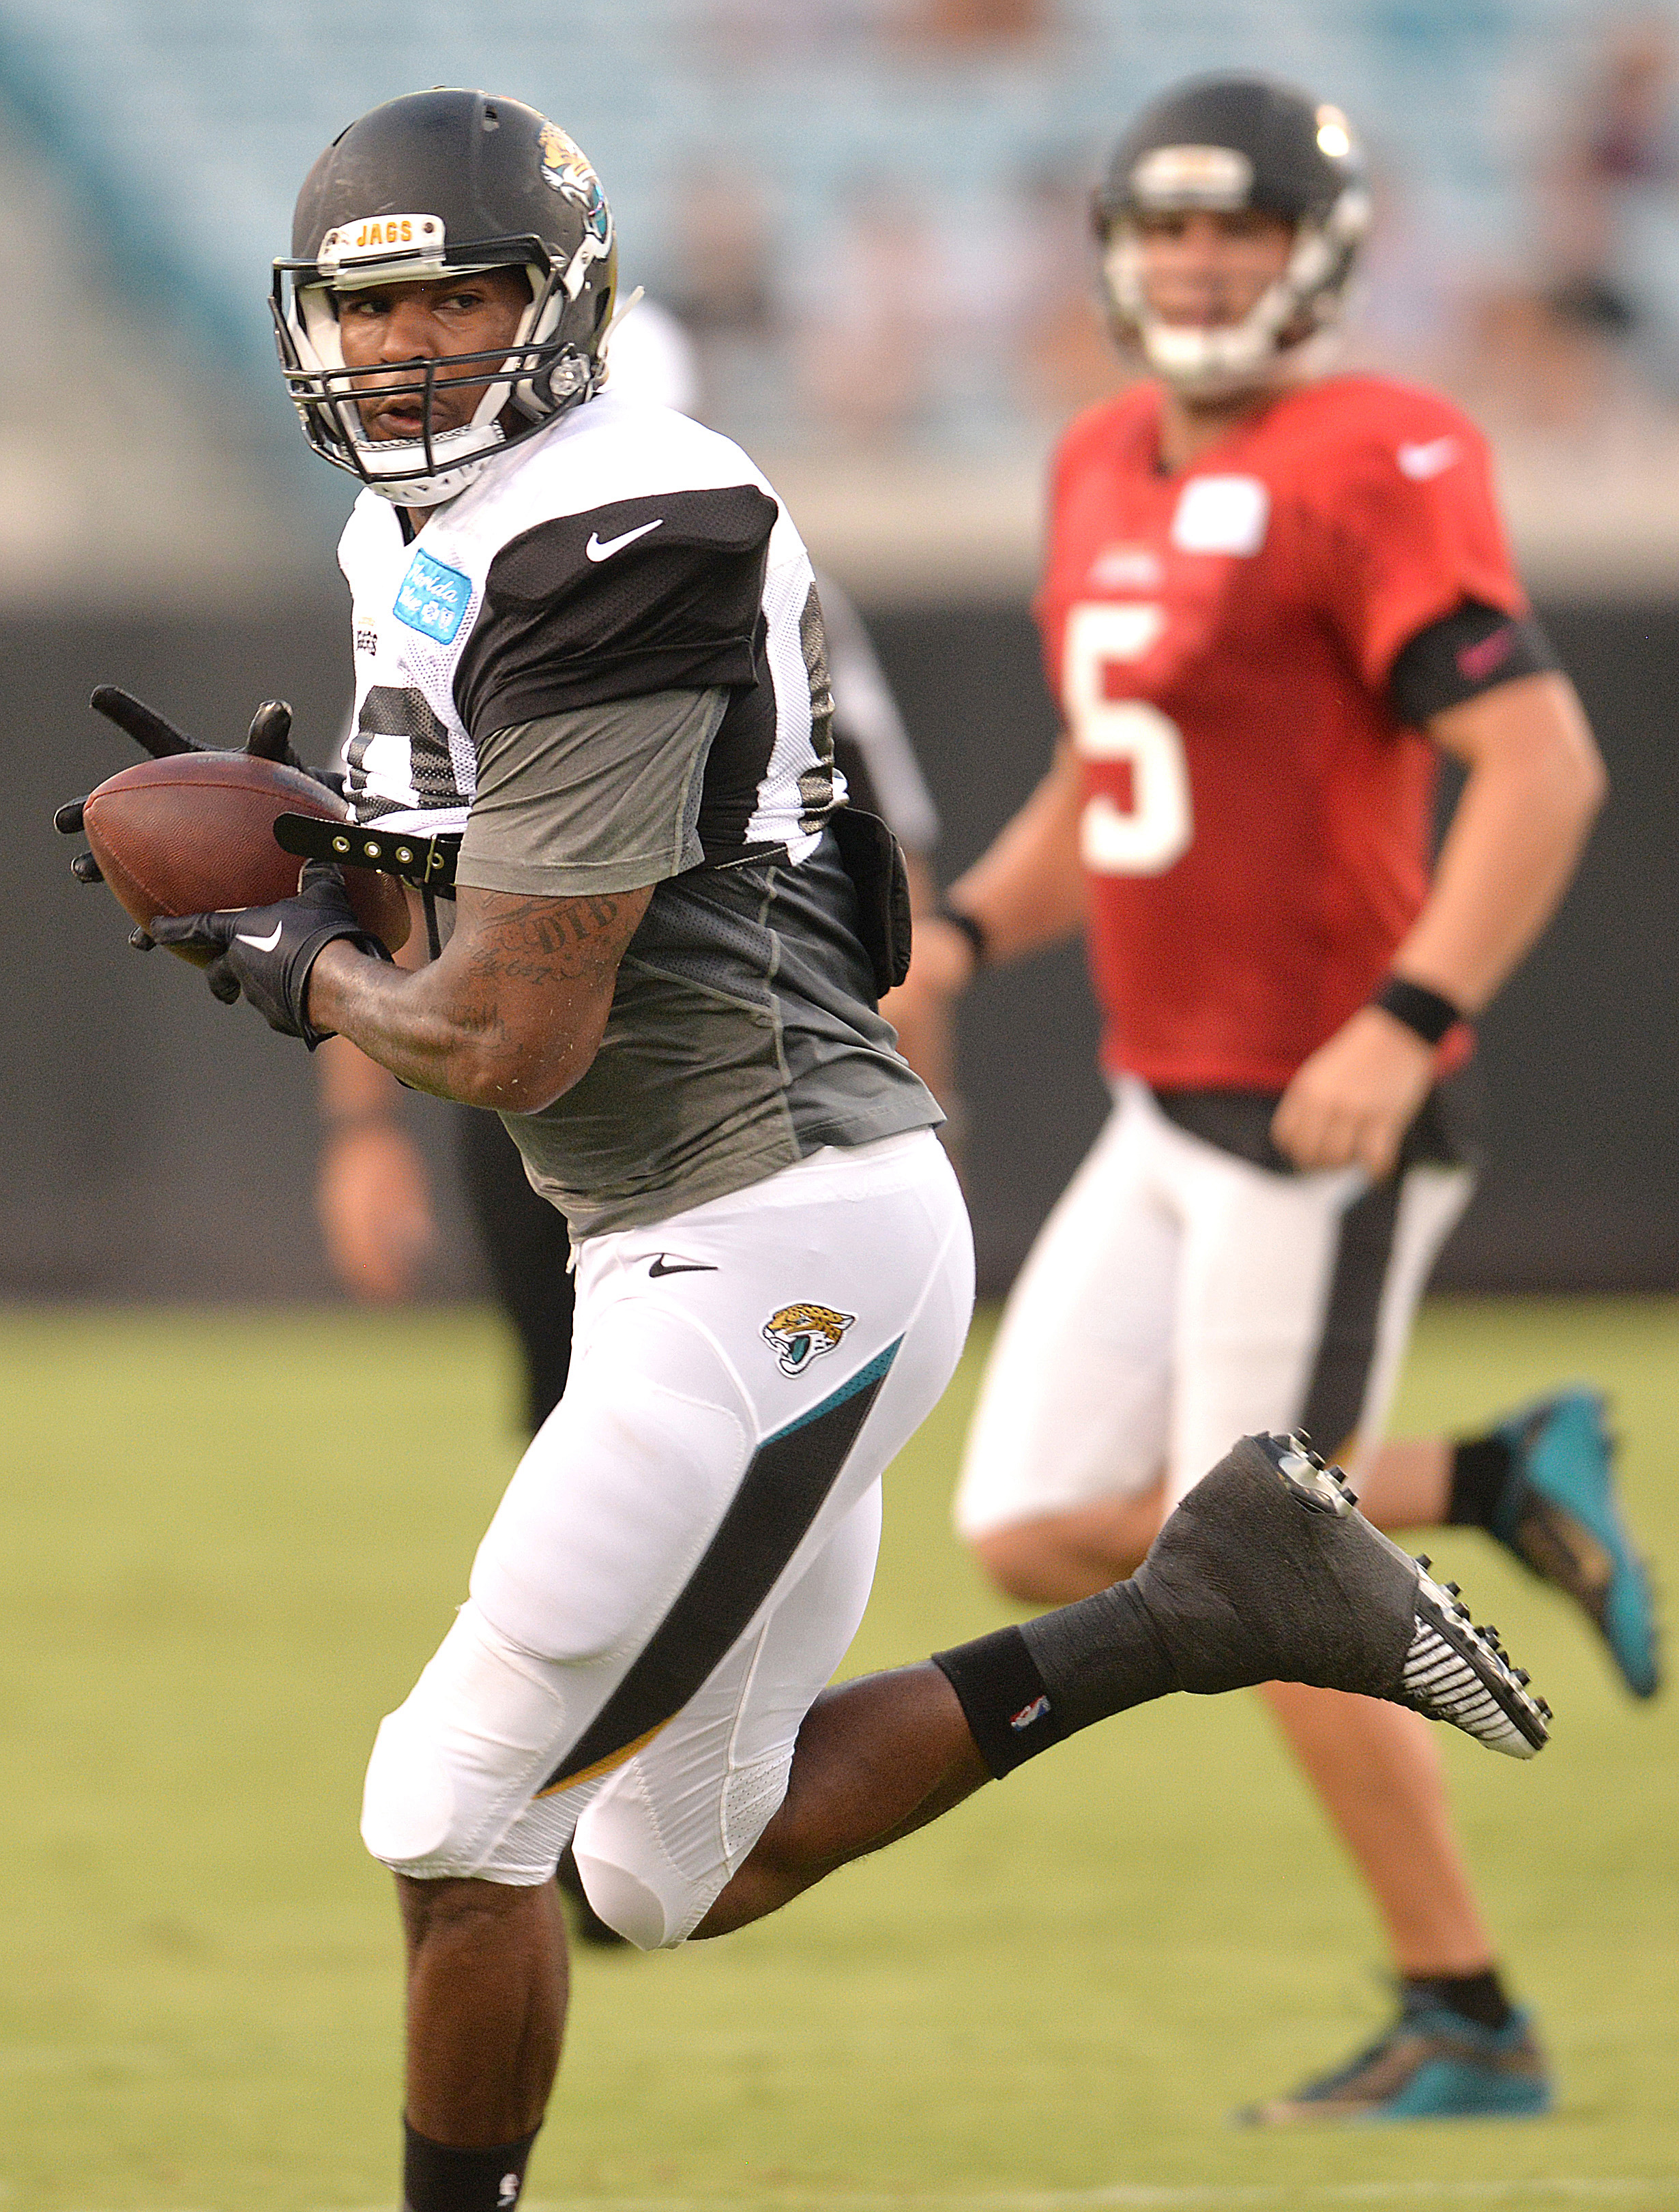 Jacksonville Jaguars' Julius Thomas catches a pass from Blake Bortles (5) during an NFL football scrimmage Saturday, Aug. 8, 2015, in Jacksonville, Fla. (Bruce Lipsky/The Florida times-Union via AP)